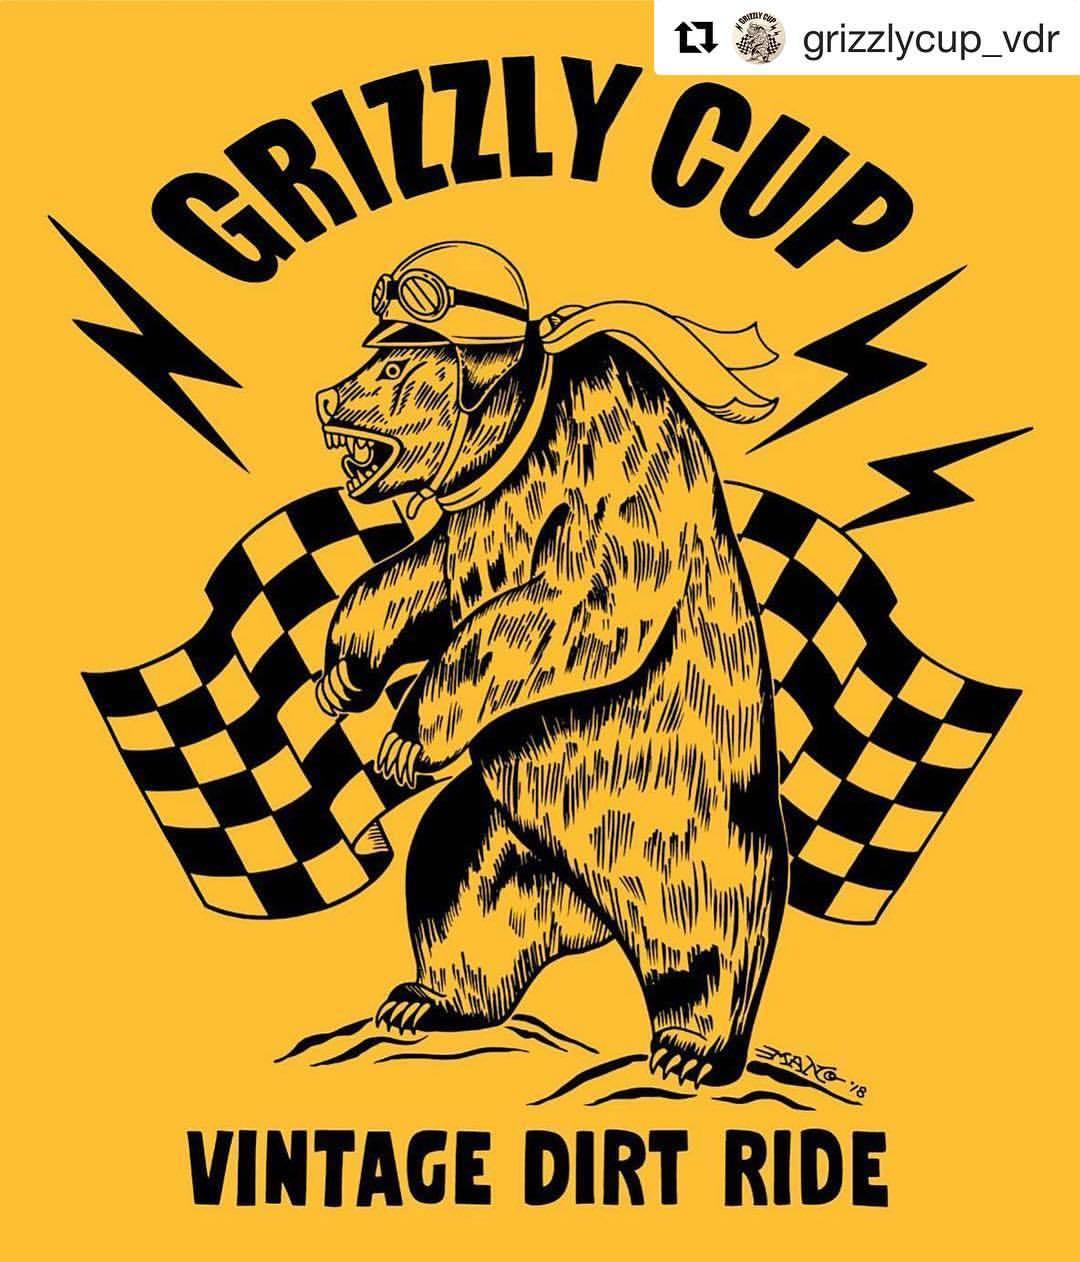 Grizzly Cup 2018 告知_e0364387_09504007.jpg